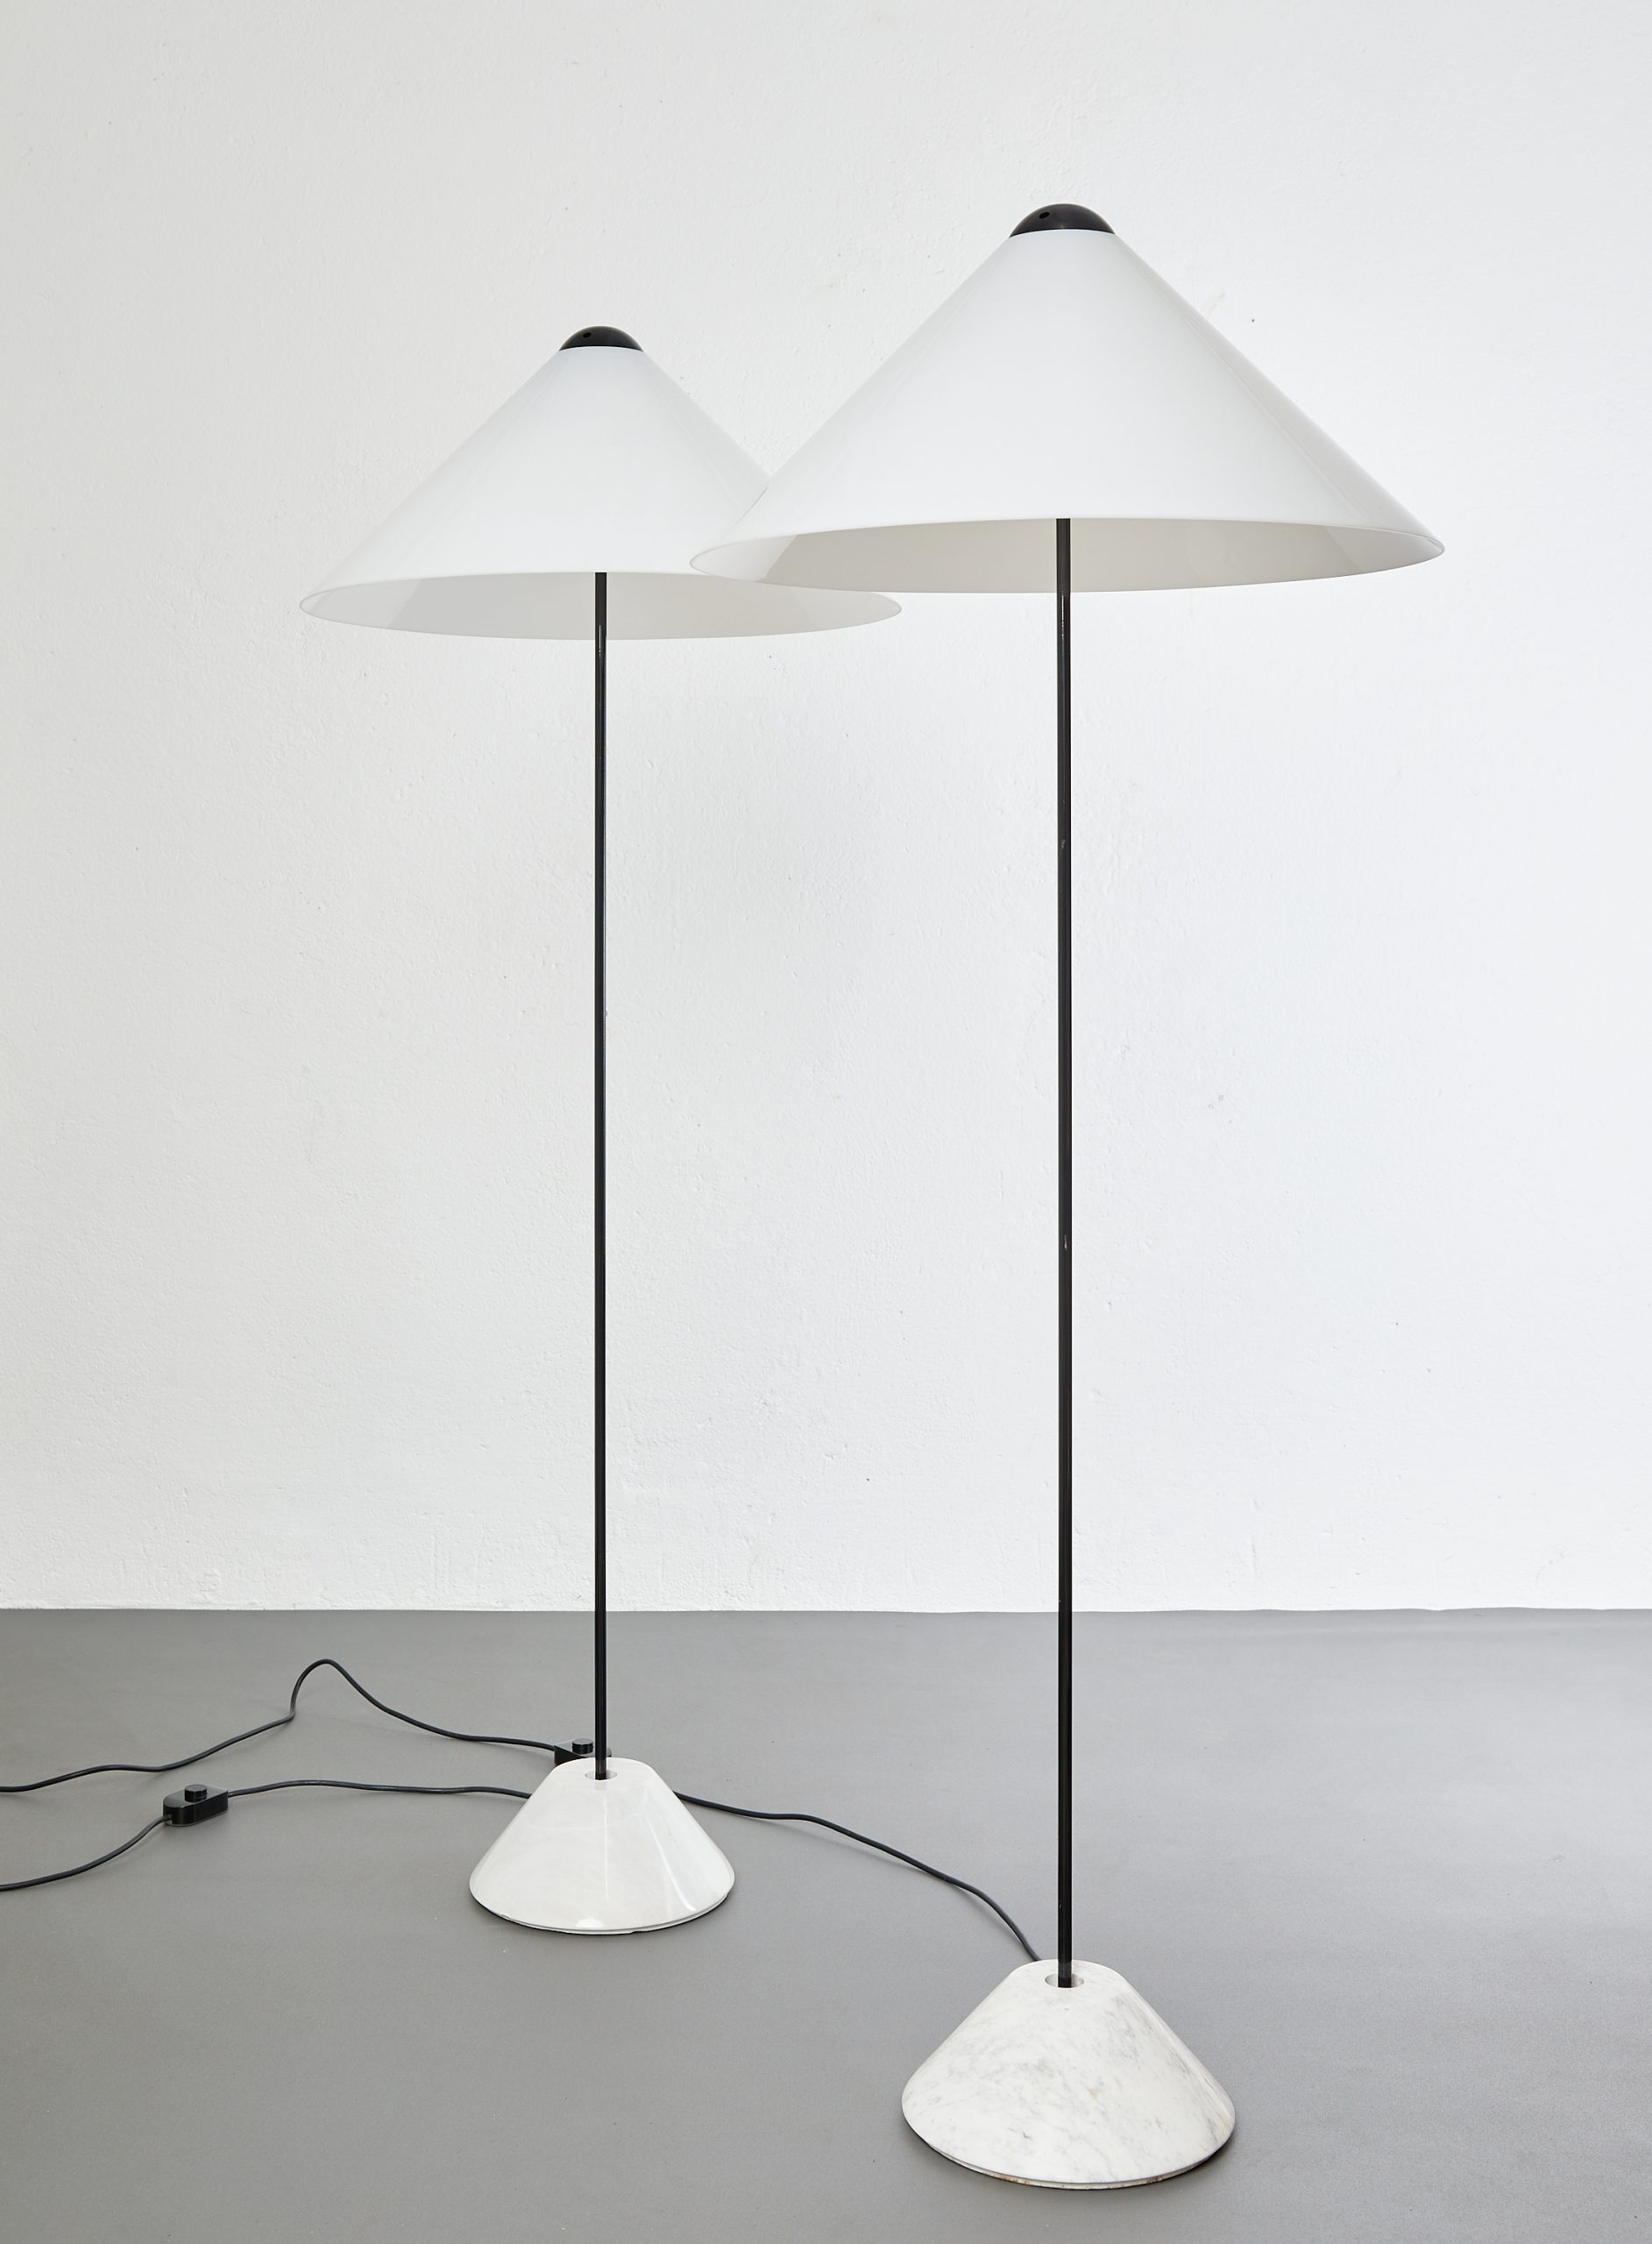 pair-of-snow-floor-lamps-by-vico-magistretti-oluce-1973-image-01